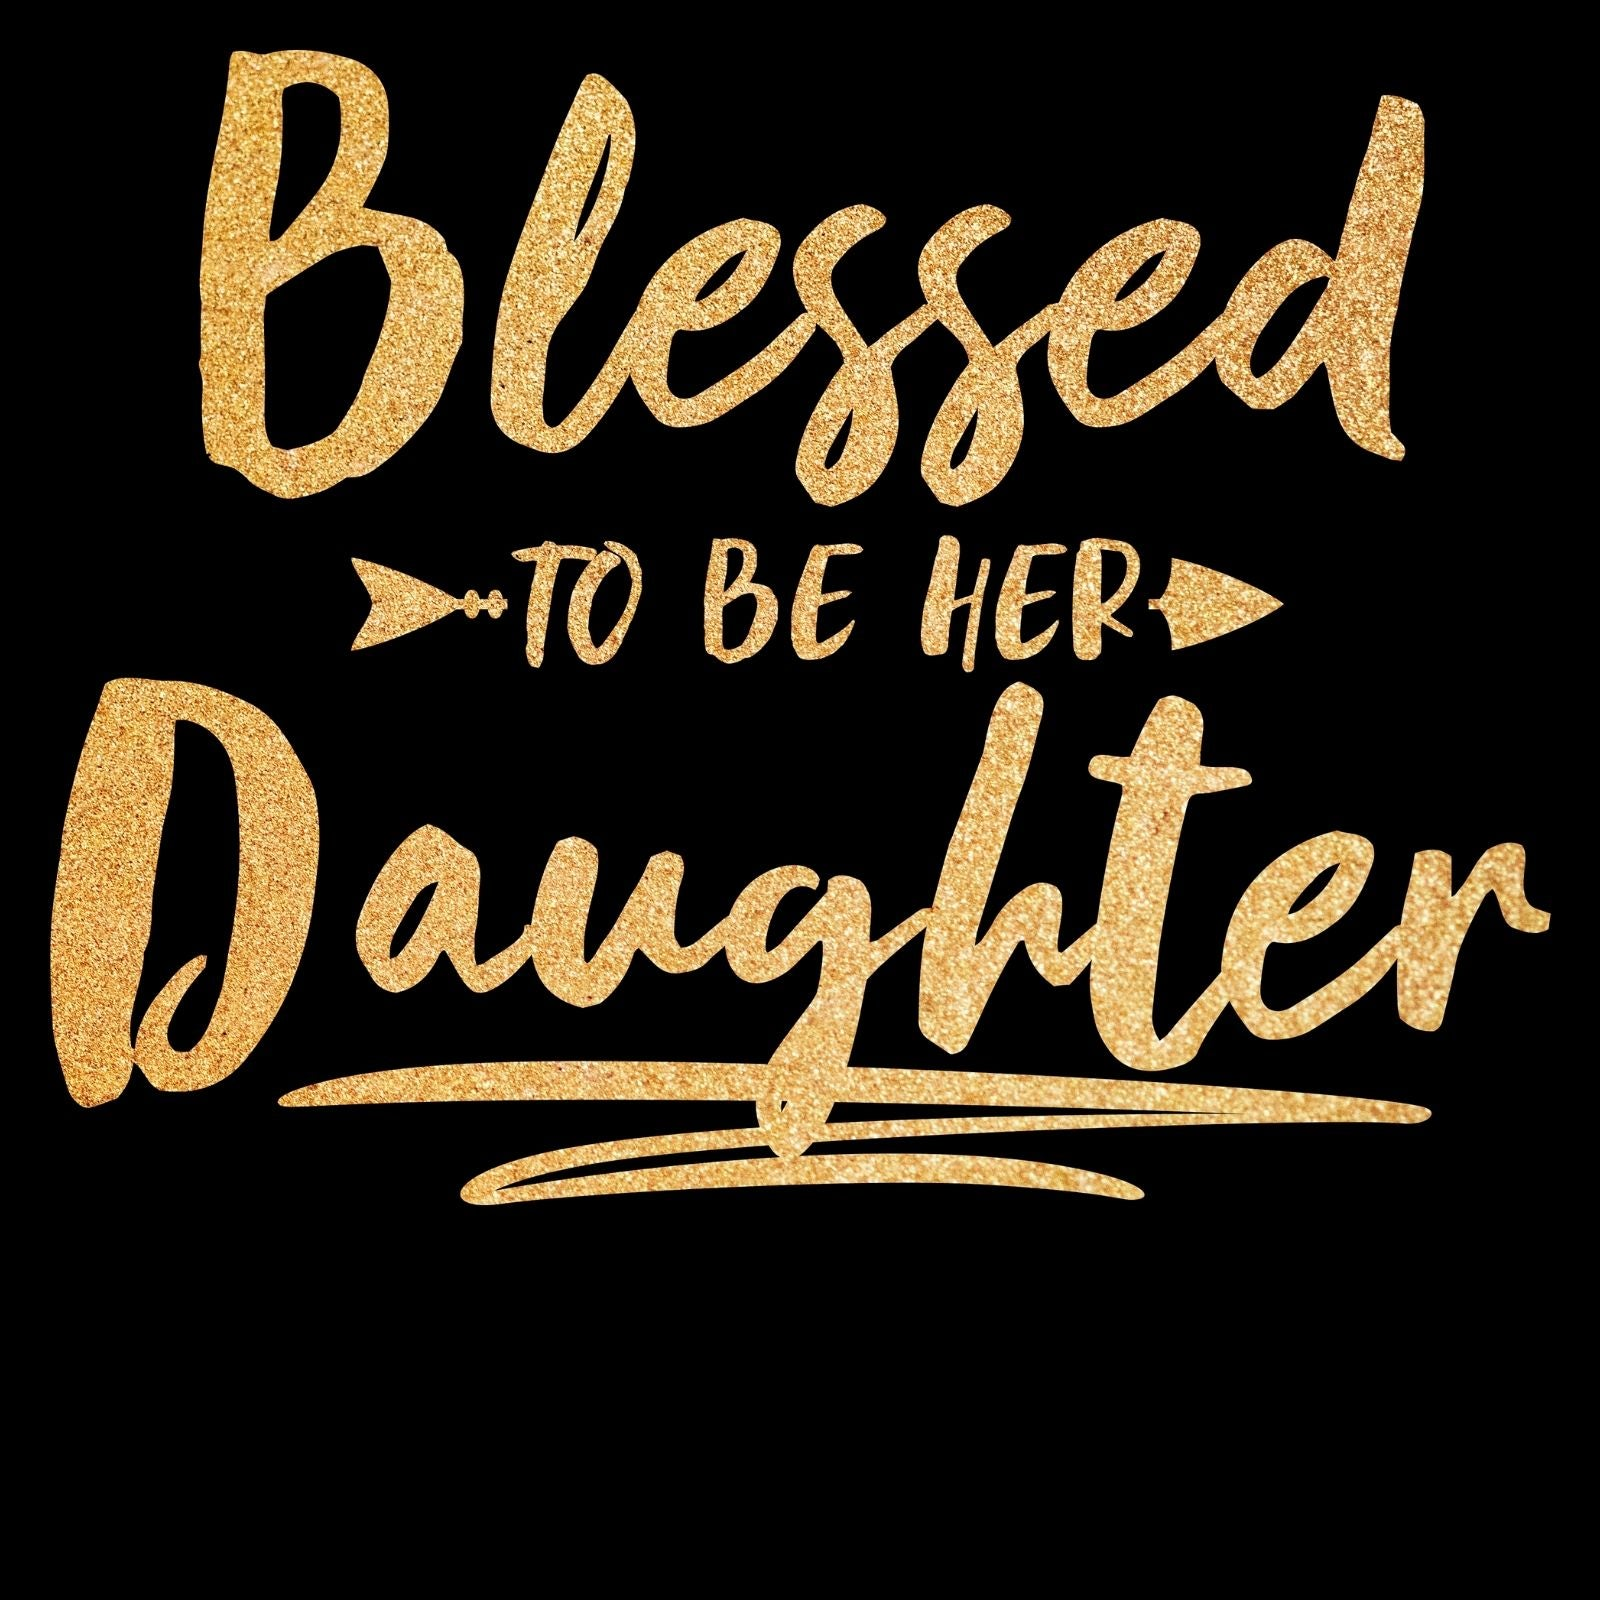 Blessed To Be Her Daughter - Bastard Graphics